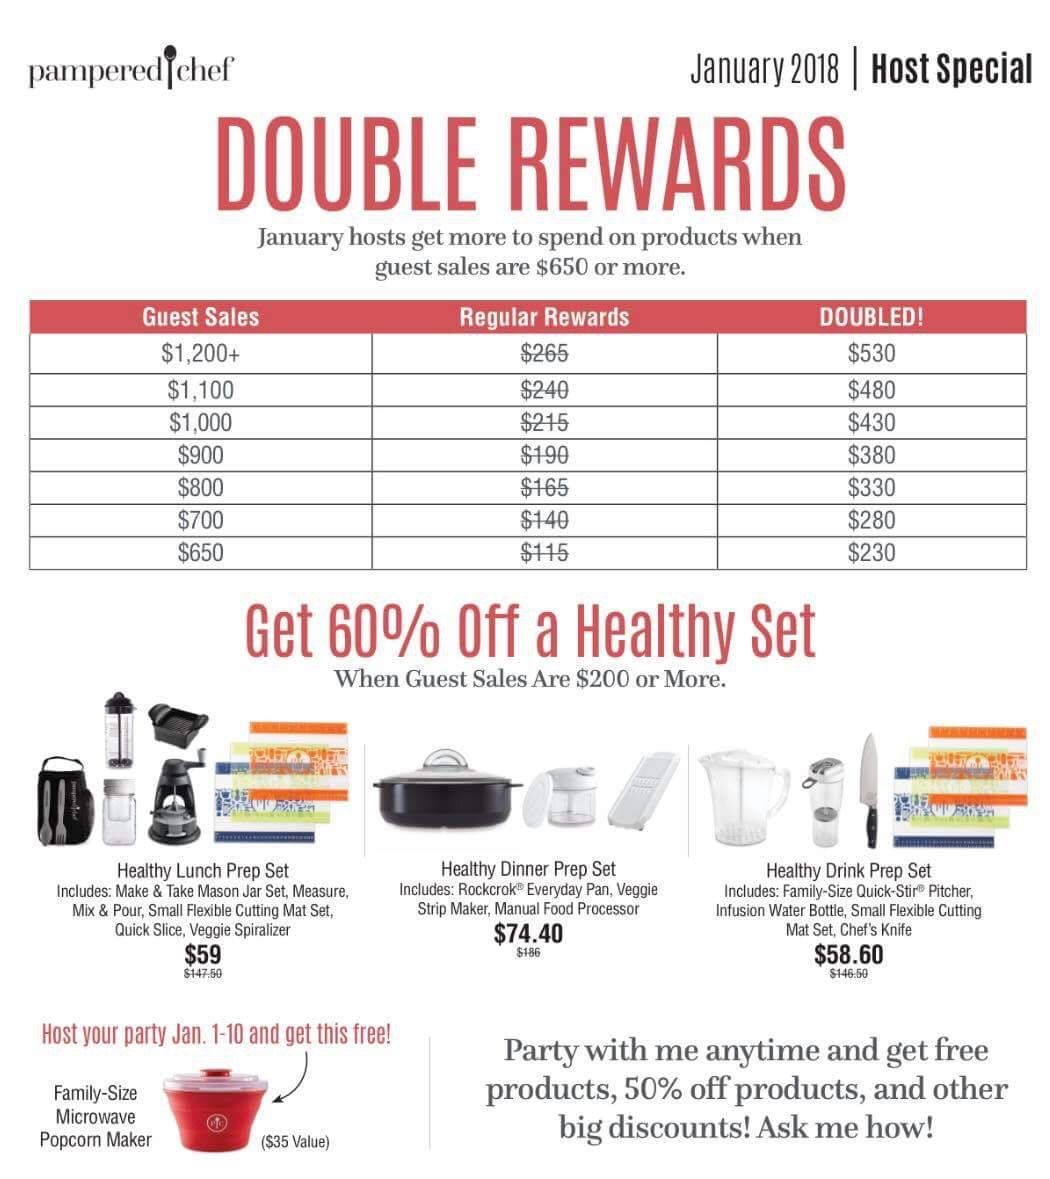 January 2018 Host Rewards Come And Join Me Rewards 2018 January2018 Cleaneatinglifestyle Cleaneating Yum Www P Pampered Chef Party Chef